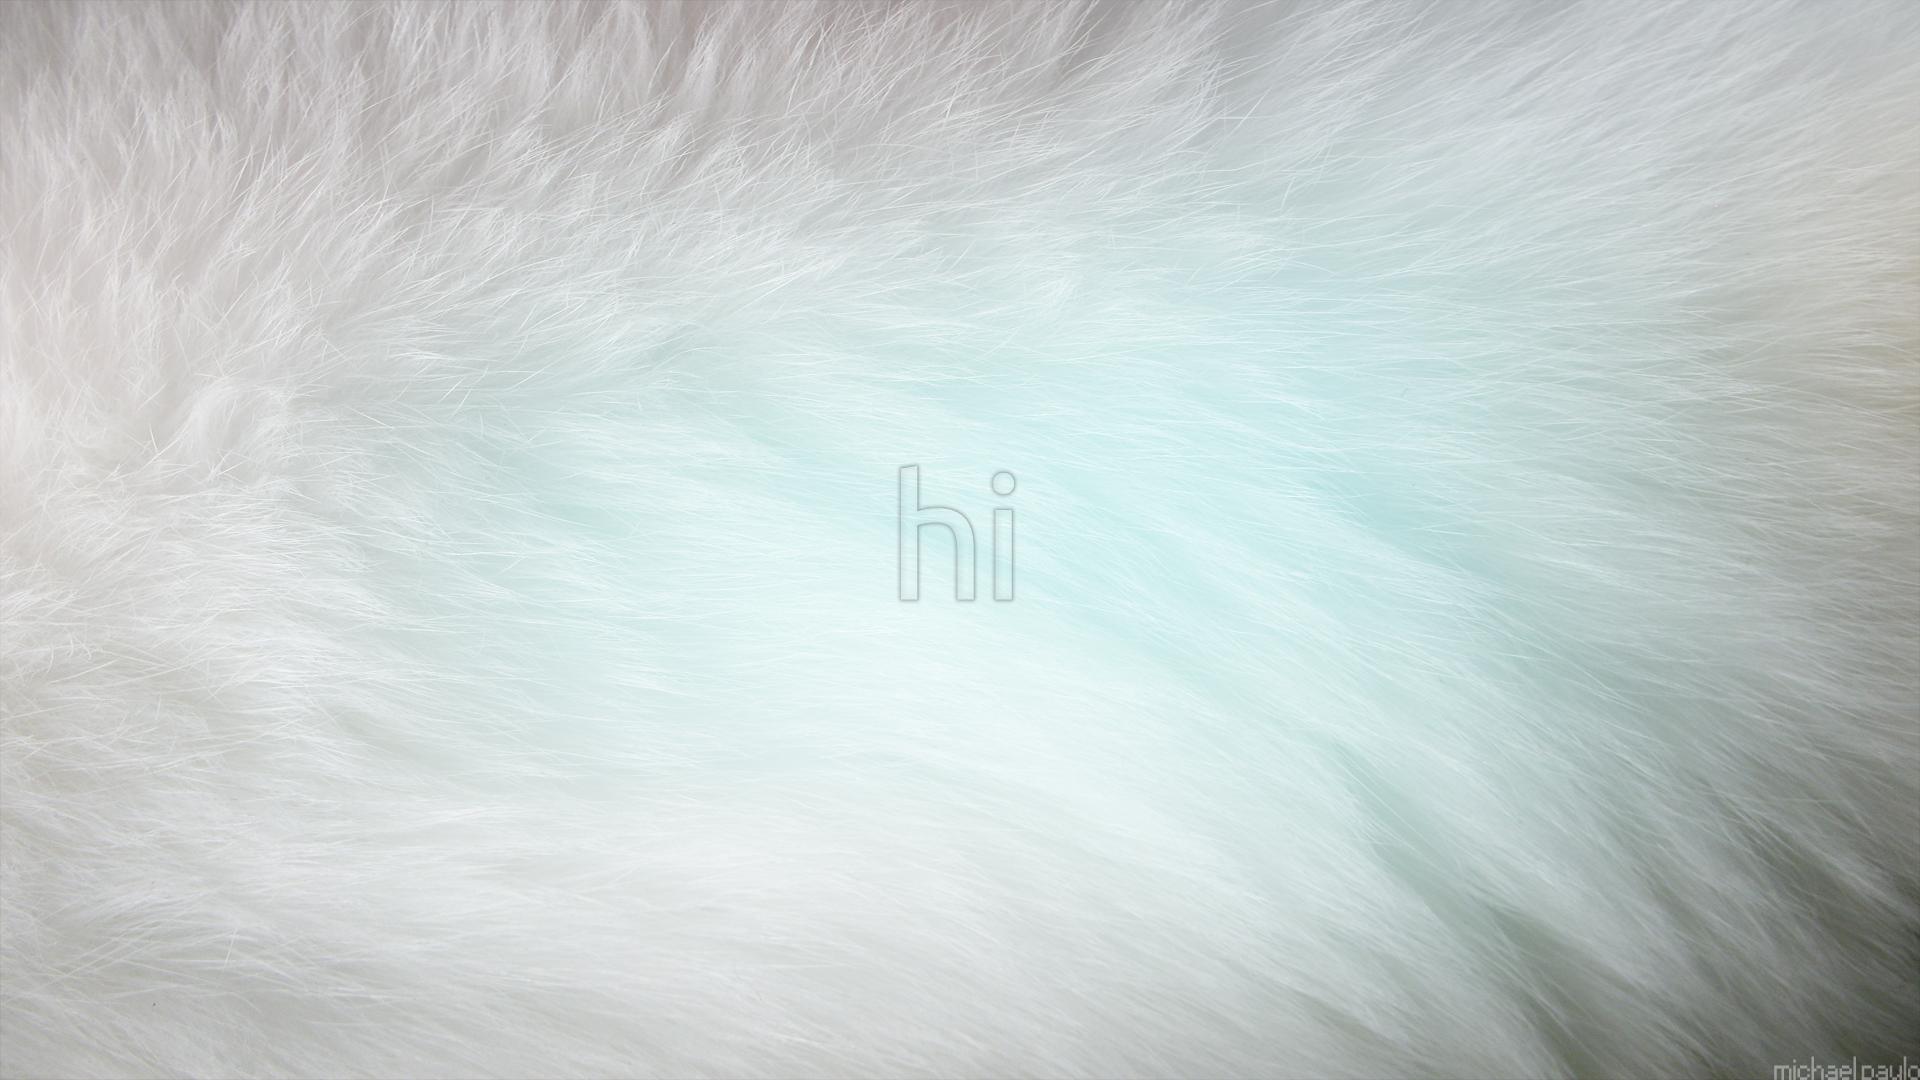 minimalistic fur Michael paulo HD Wallpaper